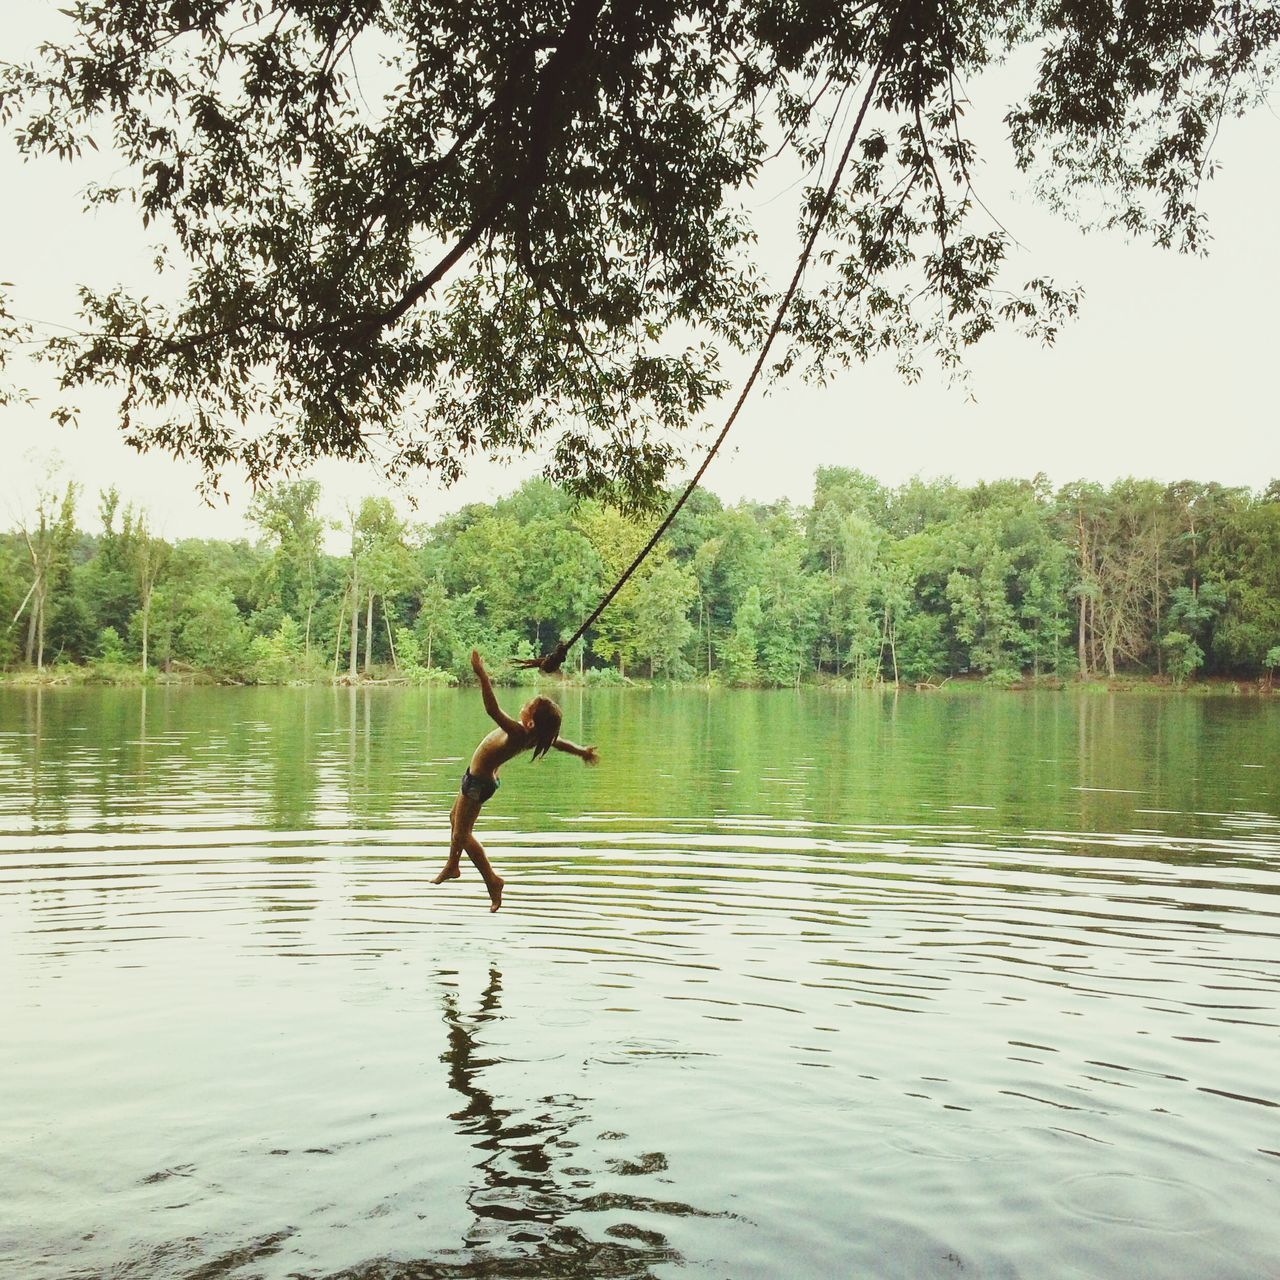 tree, rope swing, lake, one person, full length